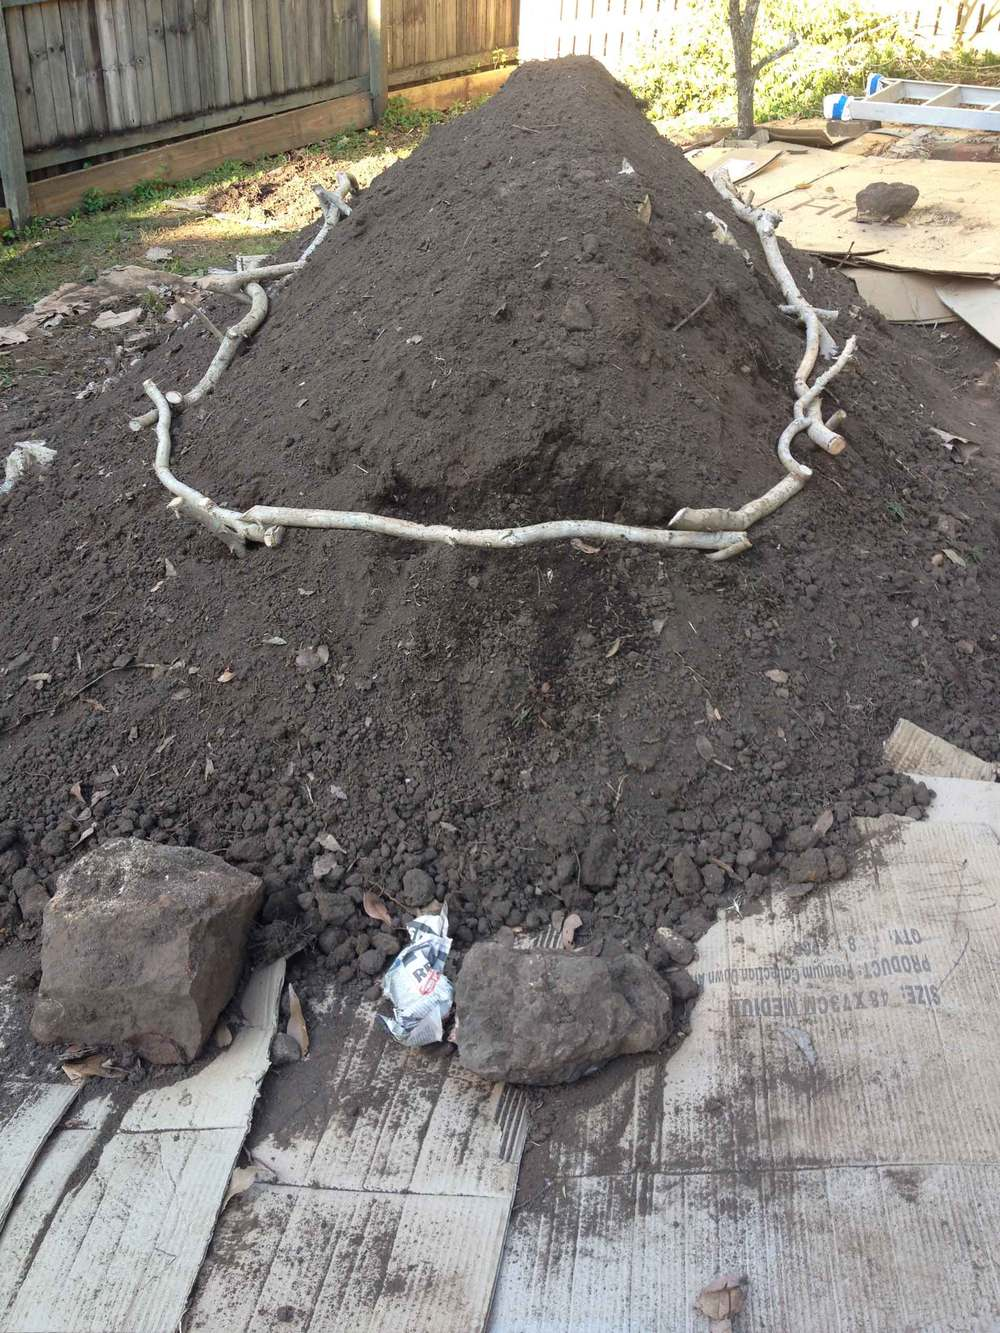 Adding the excavated soil to the mound. Branches pegged around middle-section of the mound to hold soil.